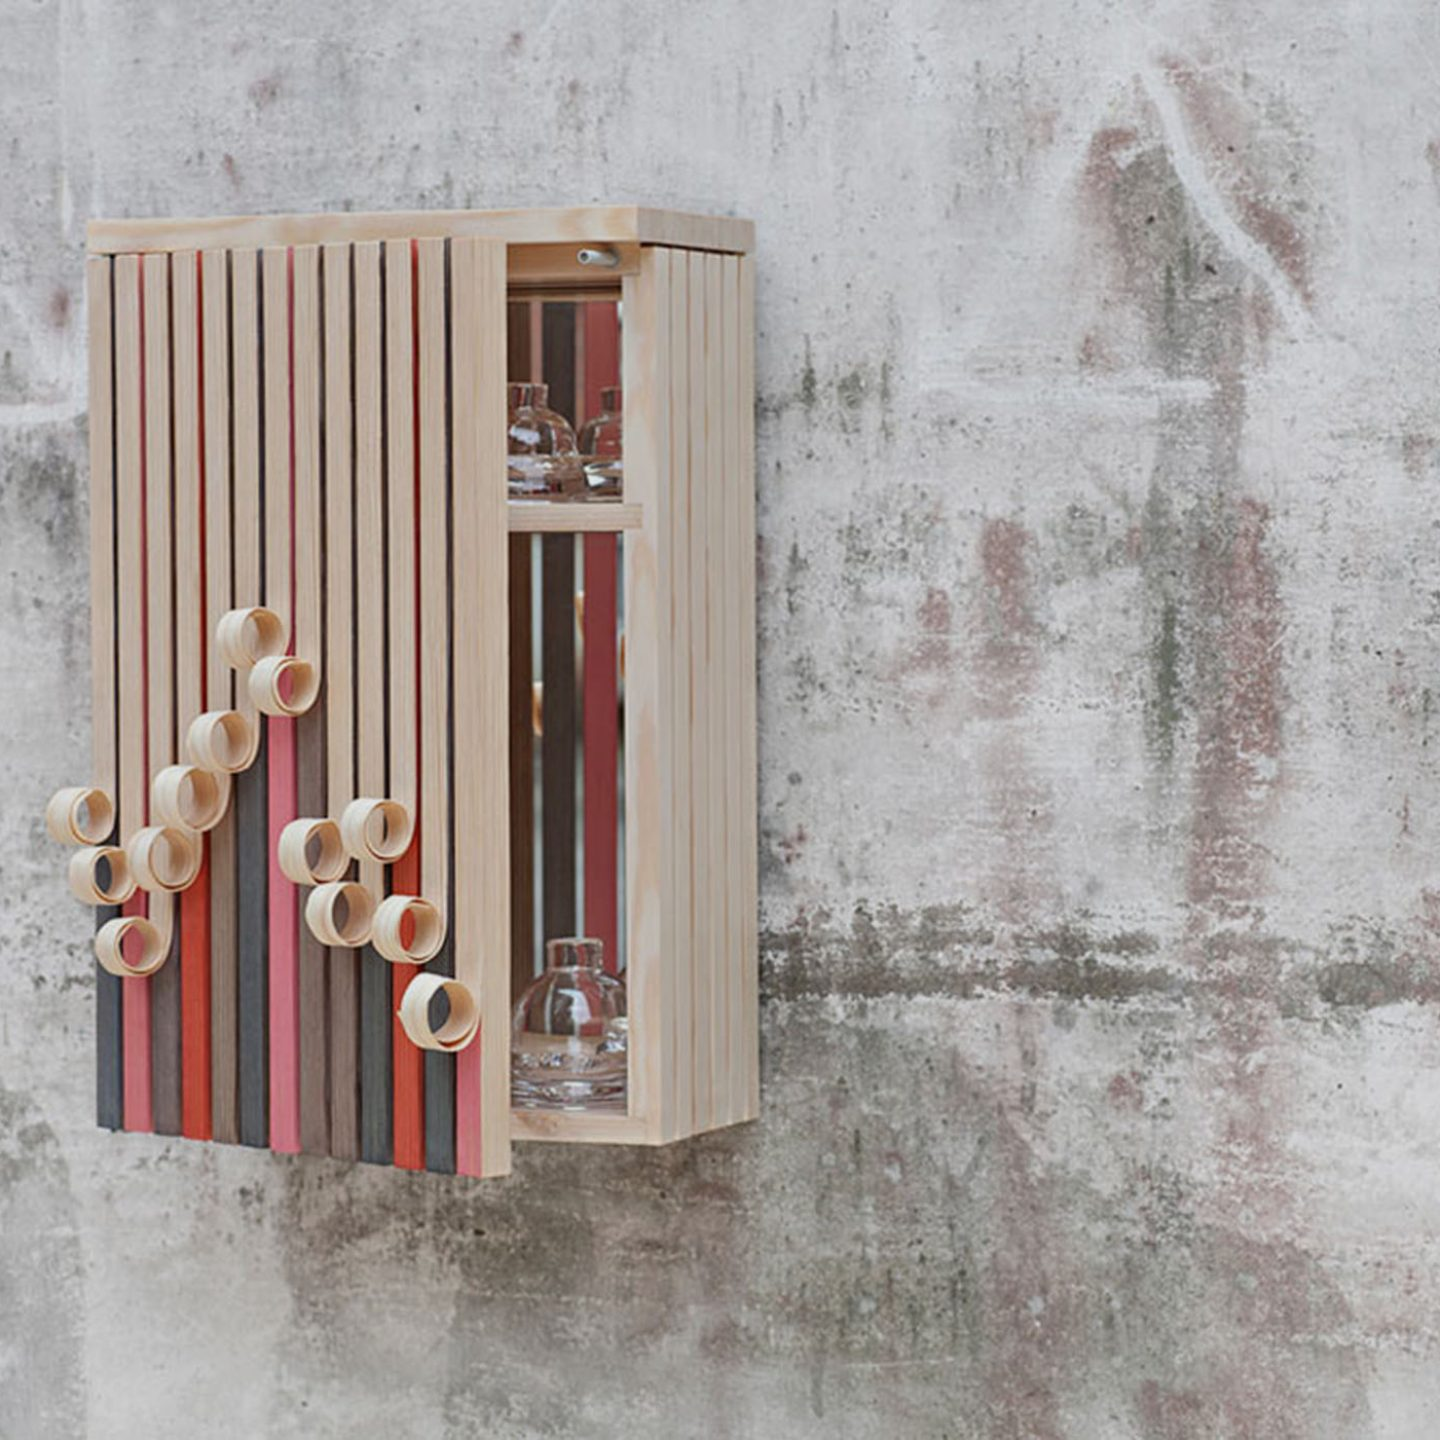 Header-Design-WhittleAwayCabinet-StoftStudio01